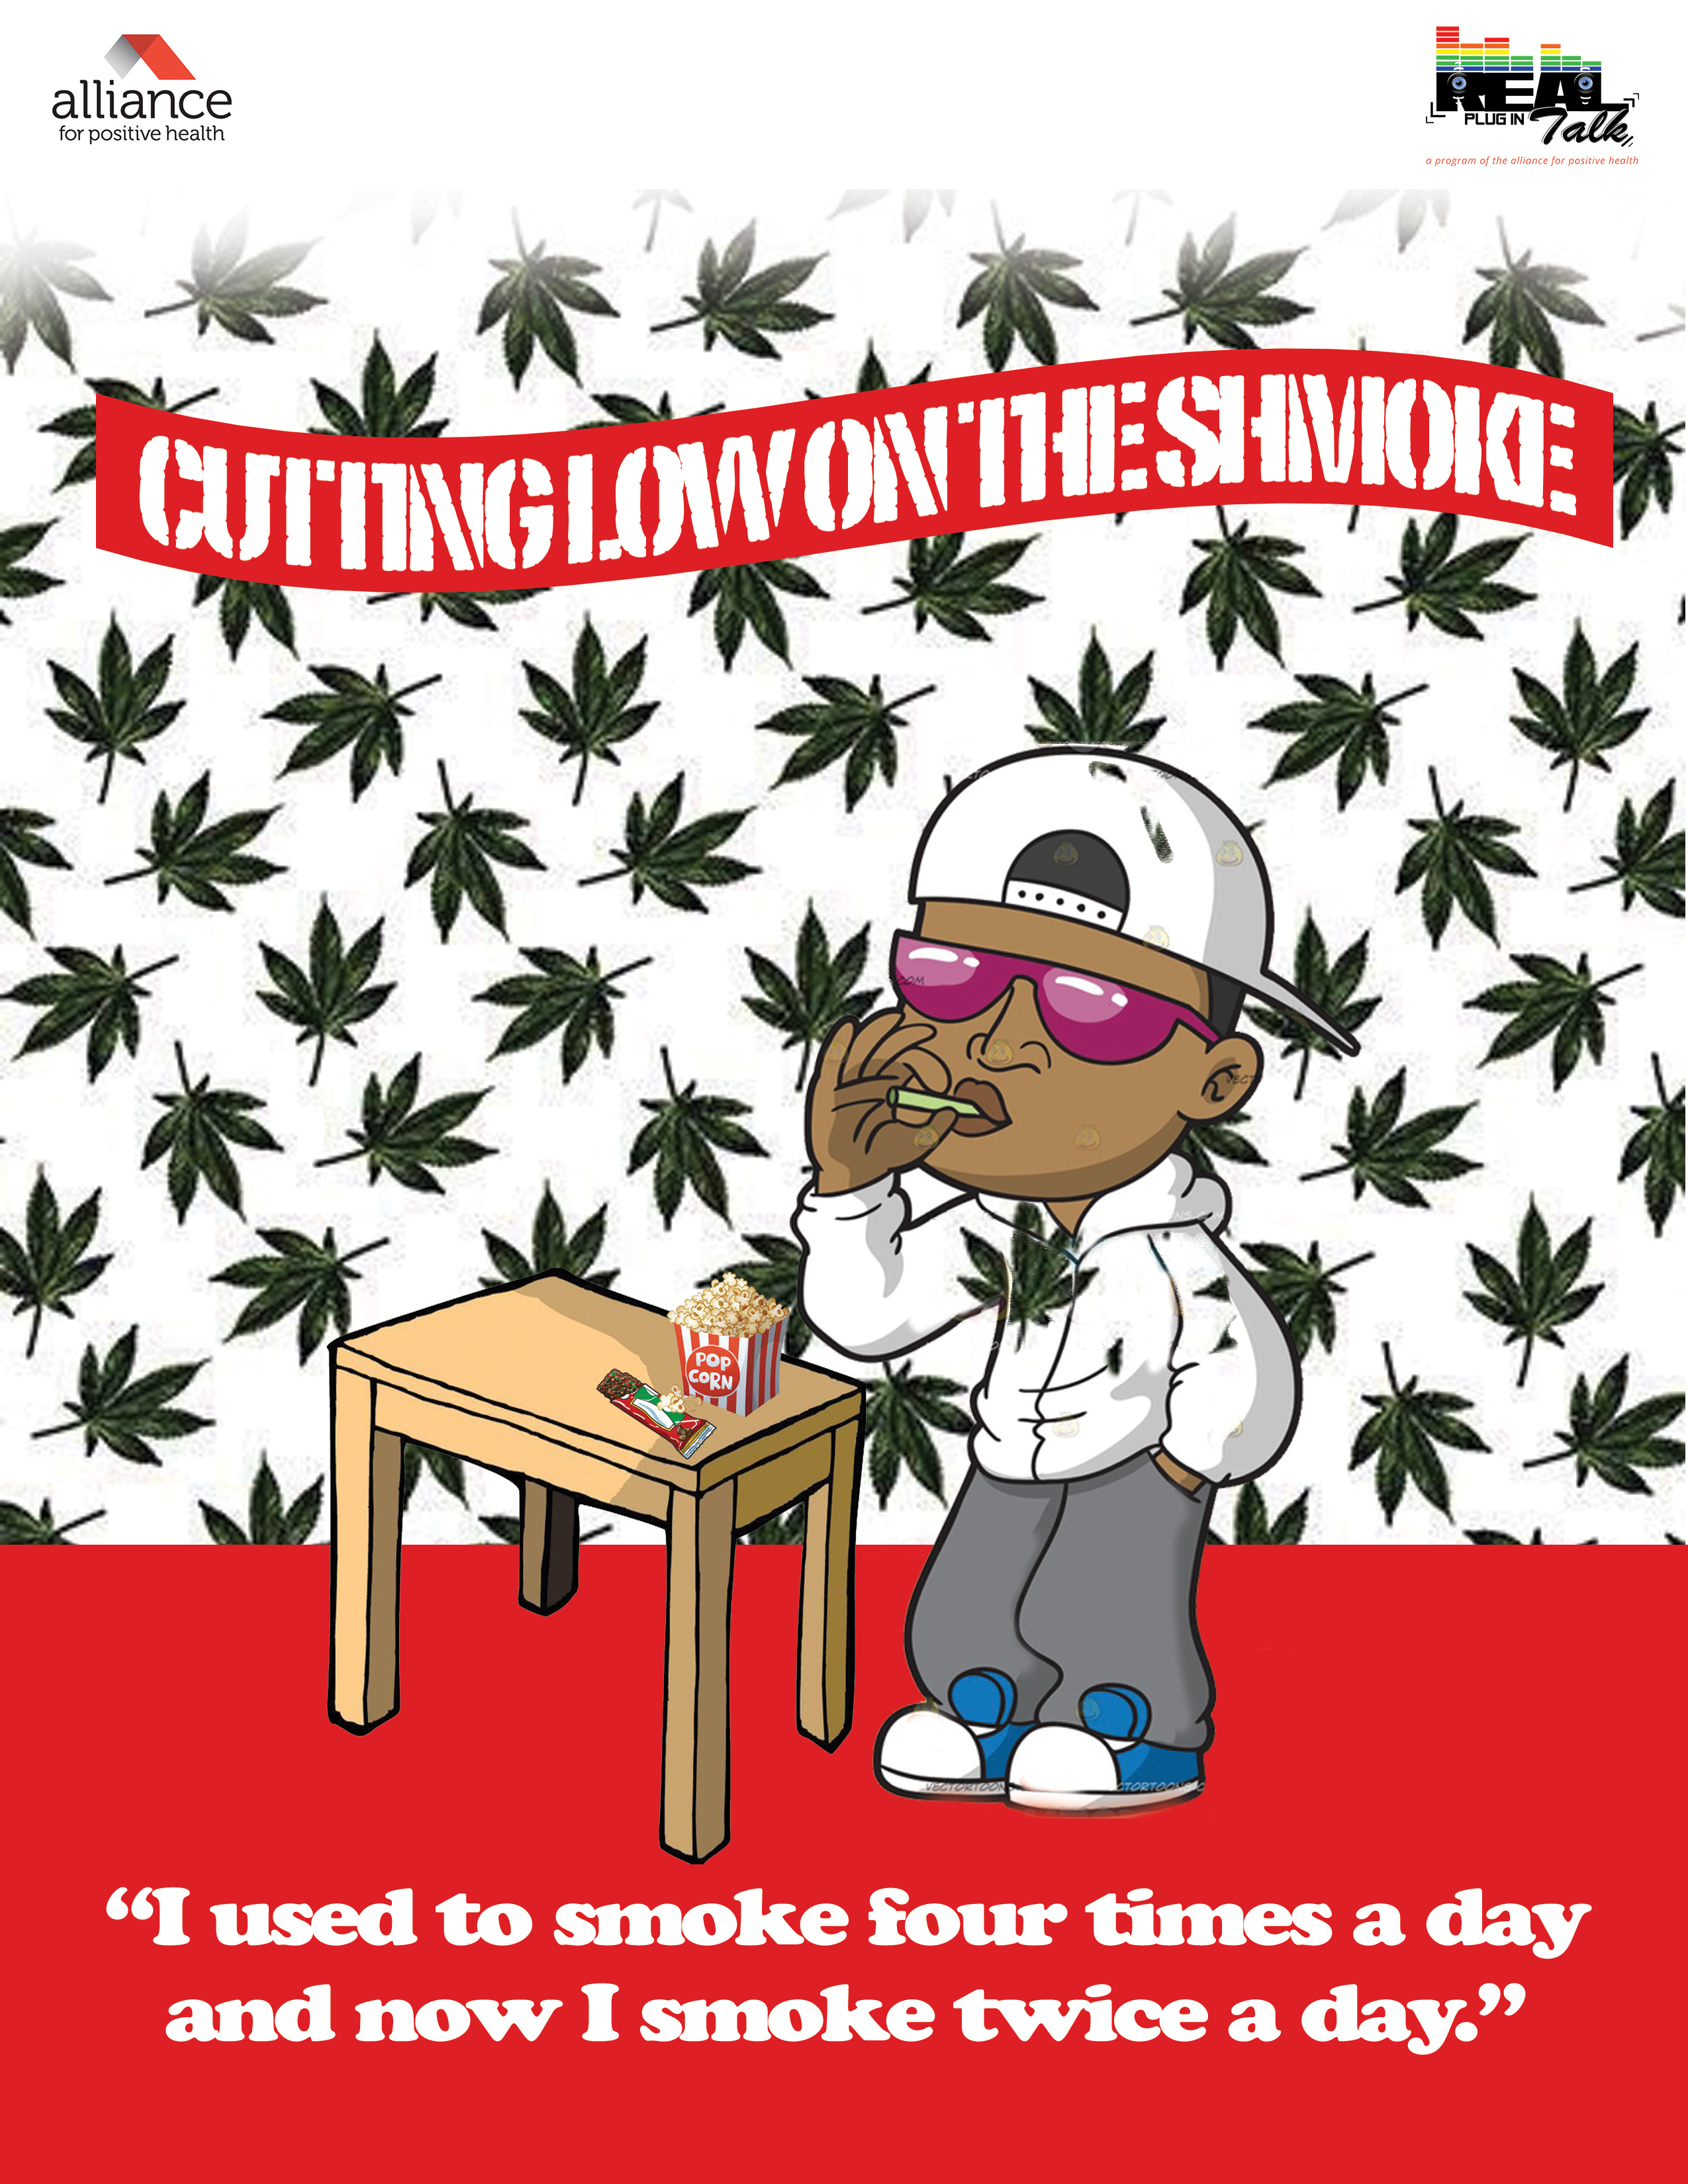 Graphic of a man smoking with the title 'Cutting Low on the Shmoke' and the text